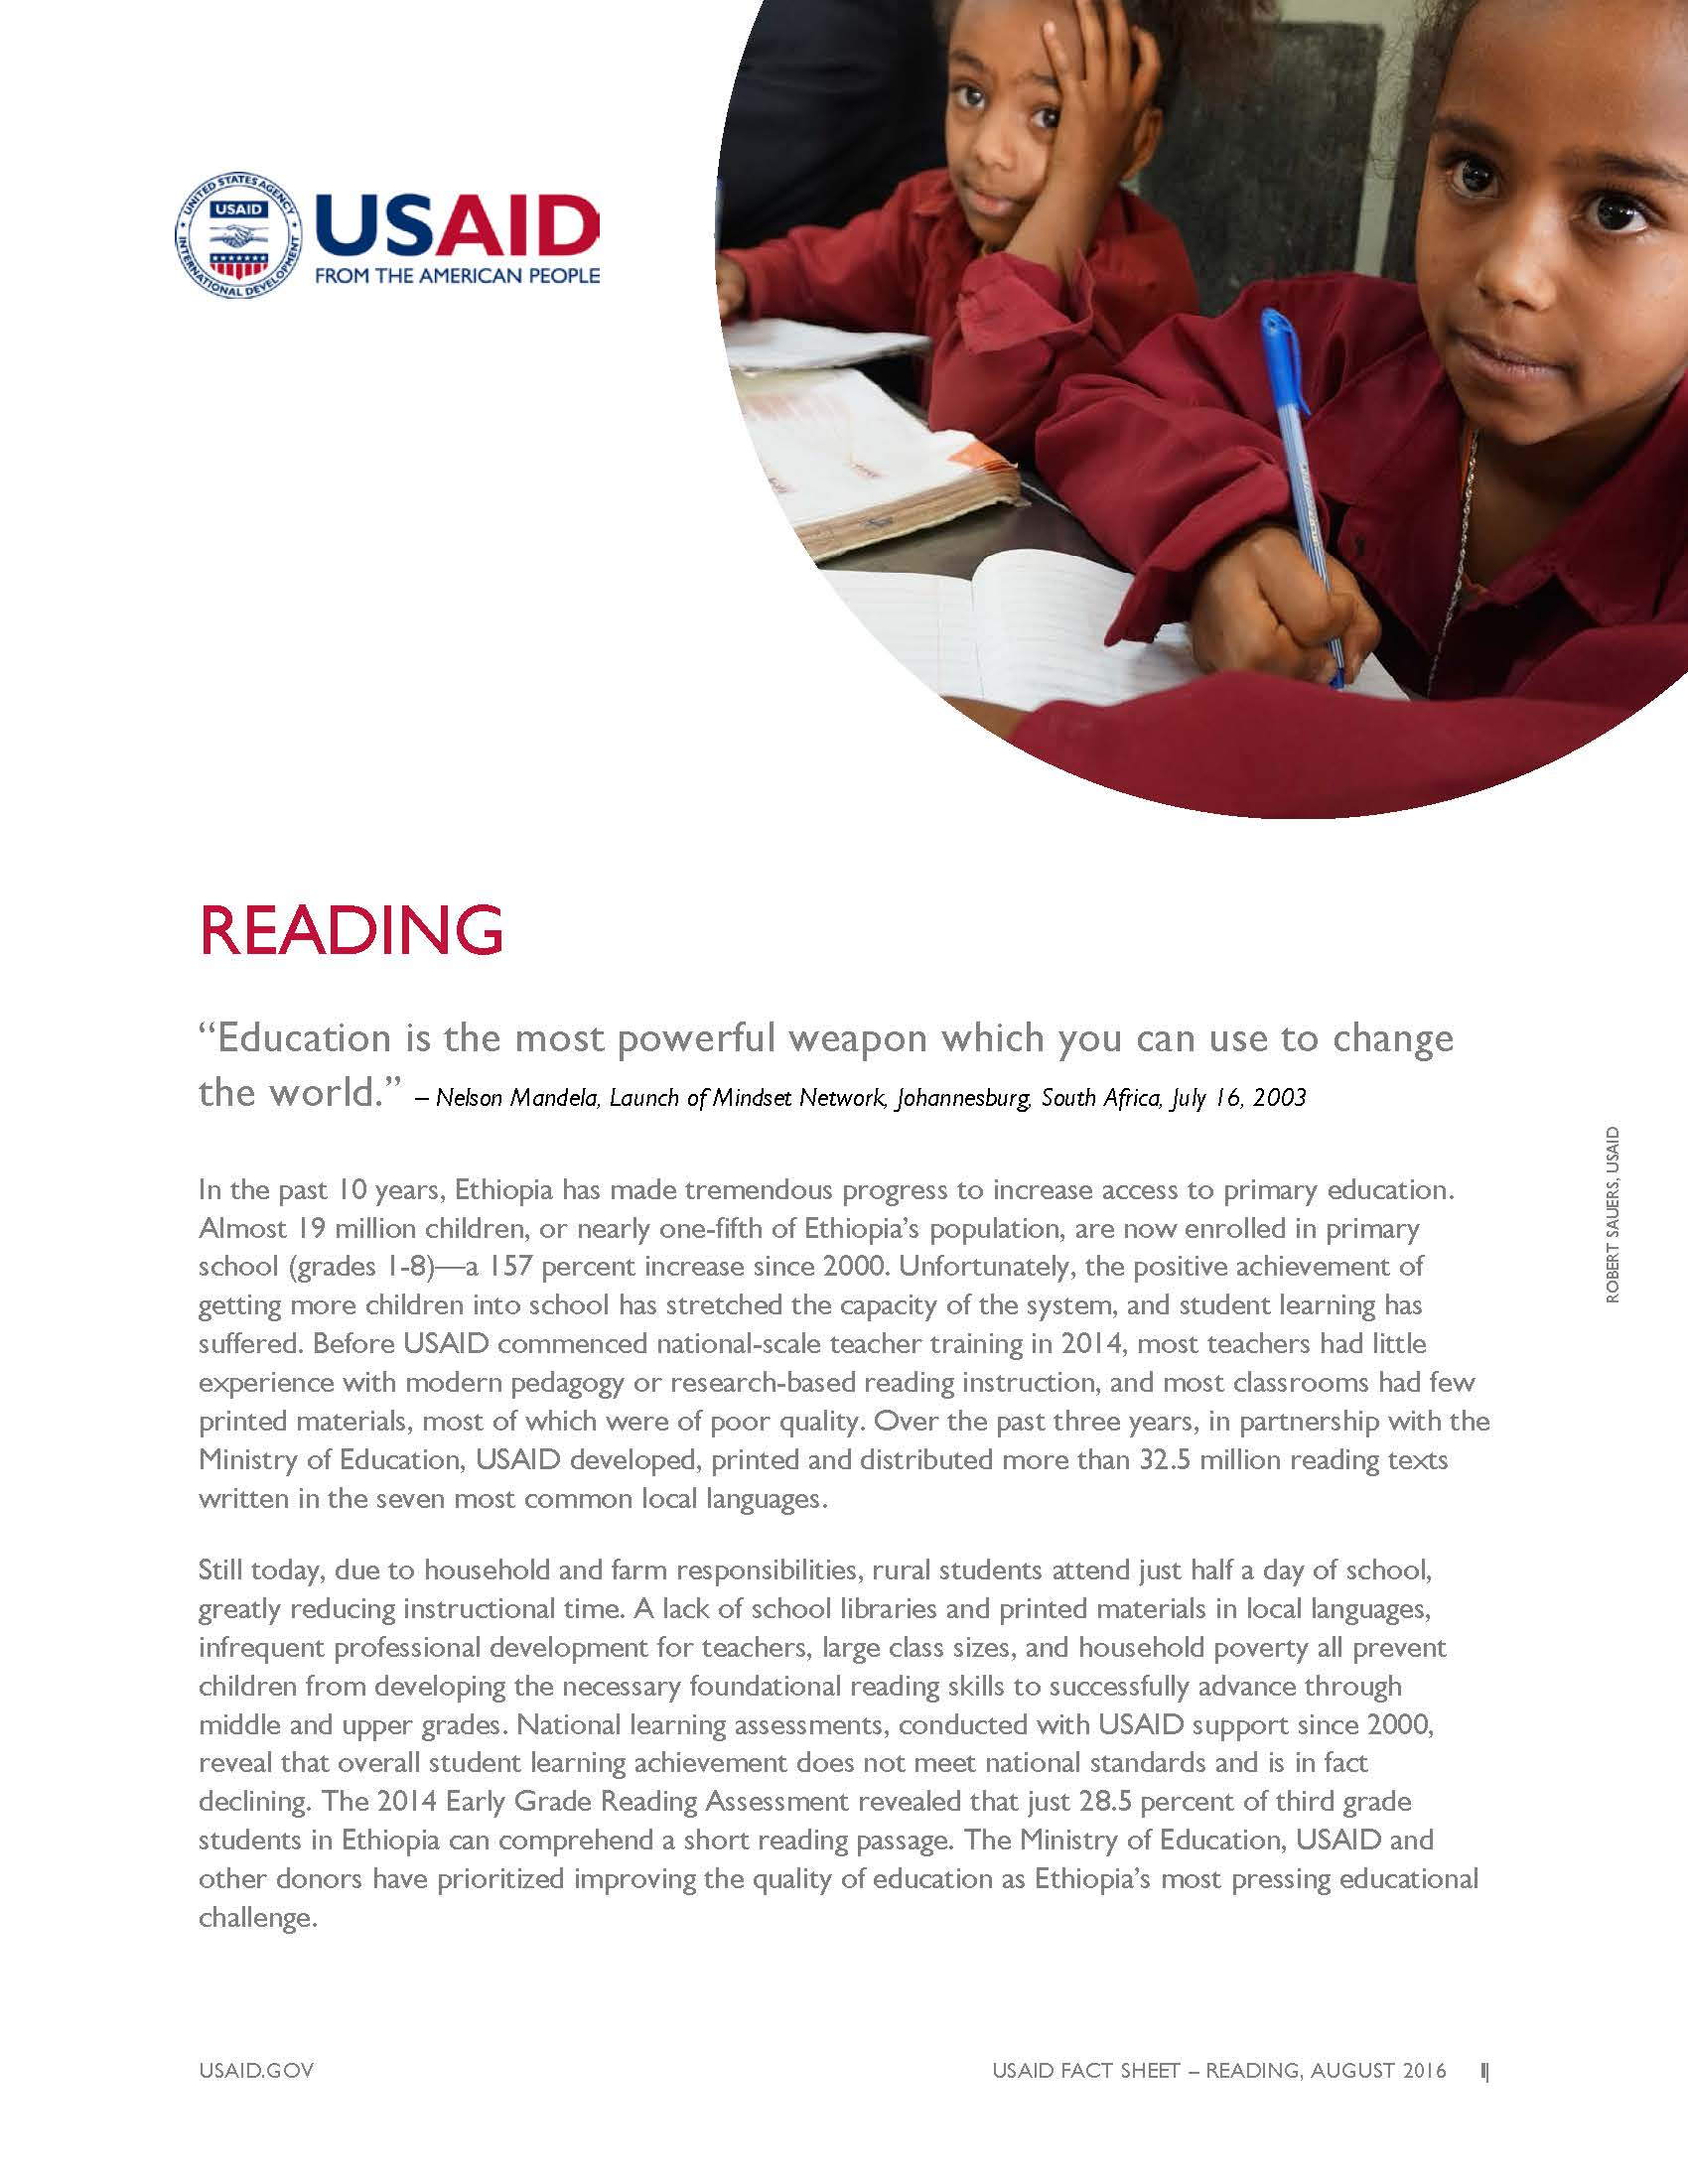 Ethiopia Reading Fact Sheet